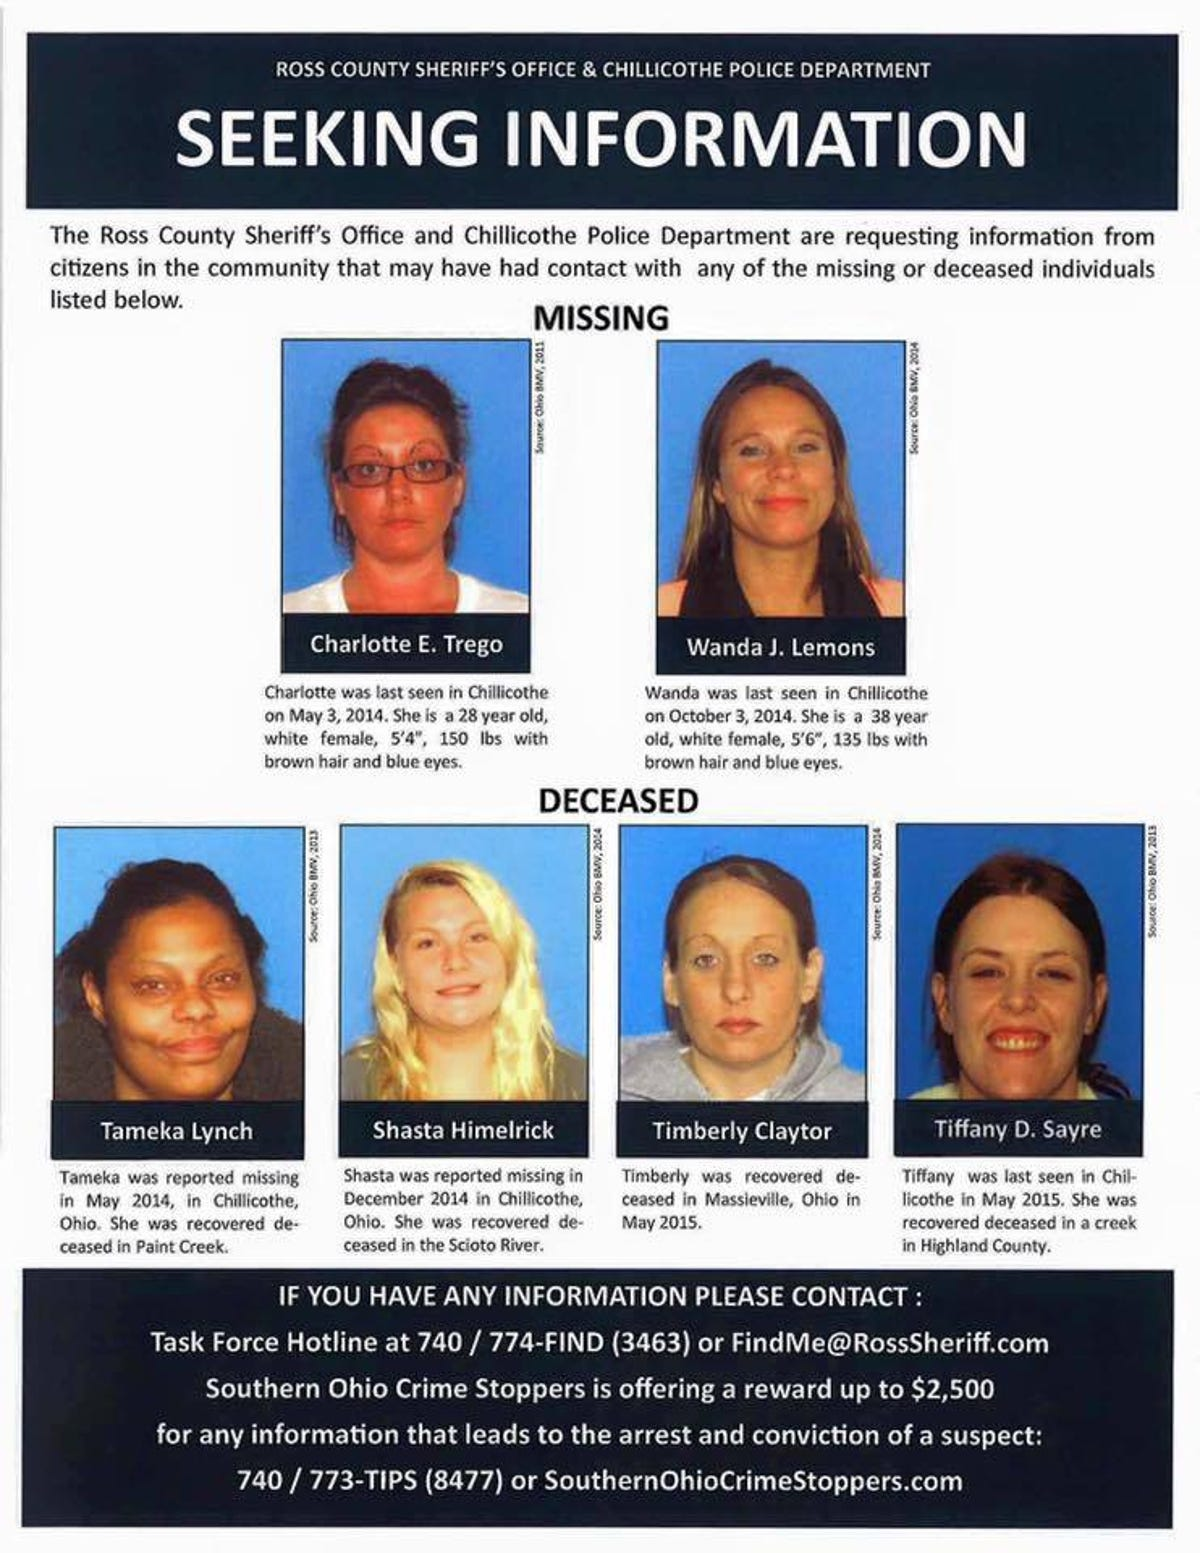 Chillicothe police seek info on missing women via